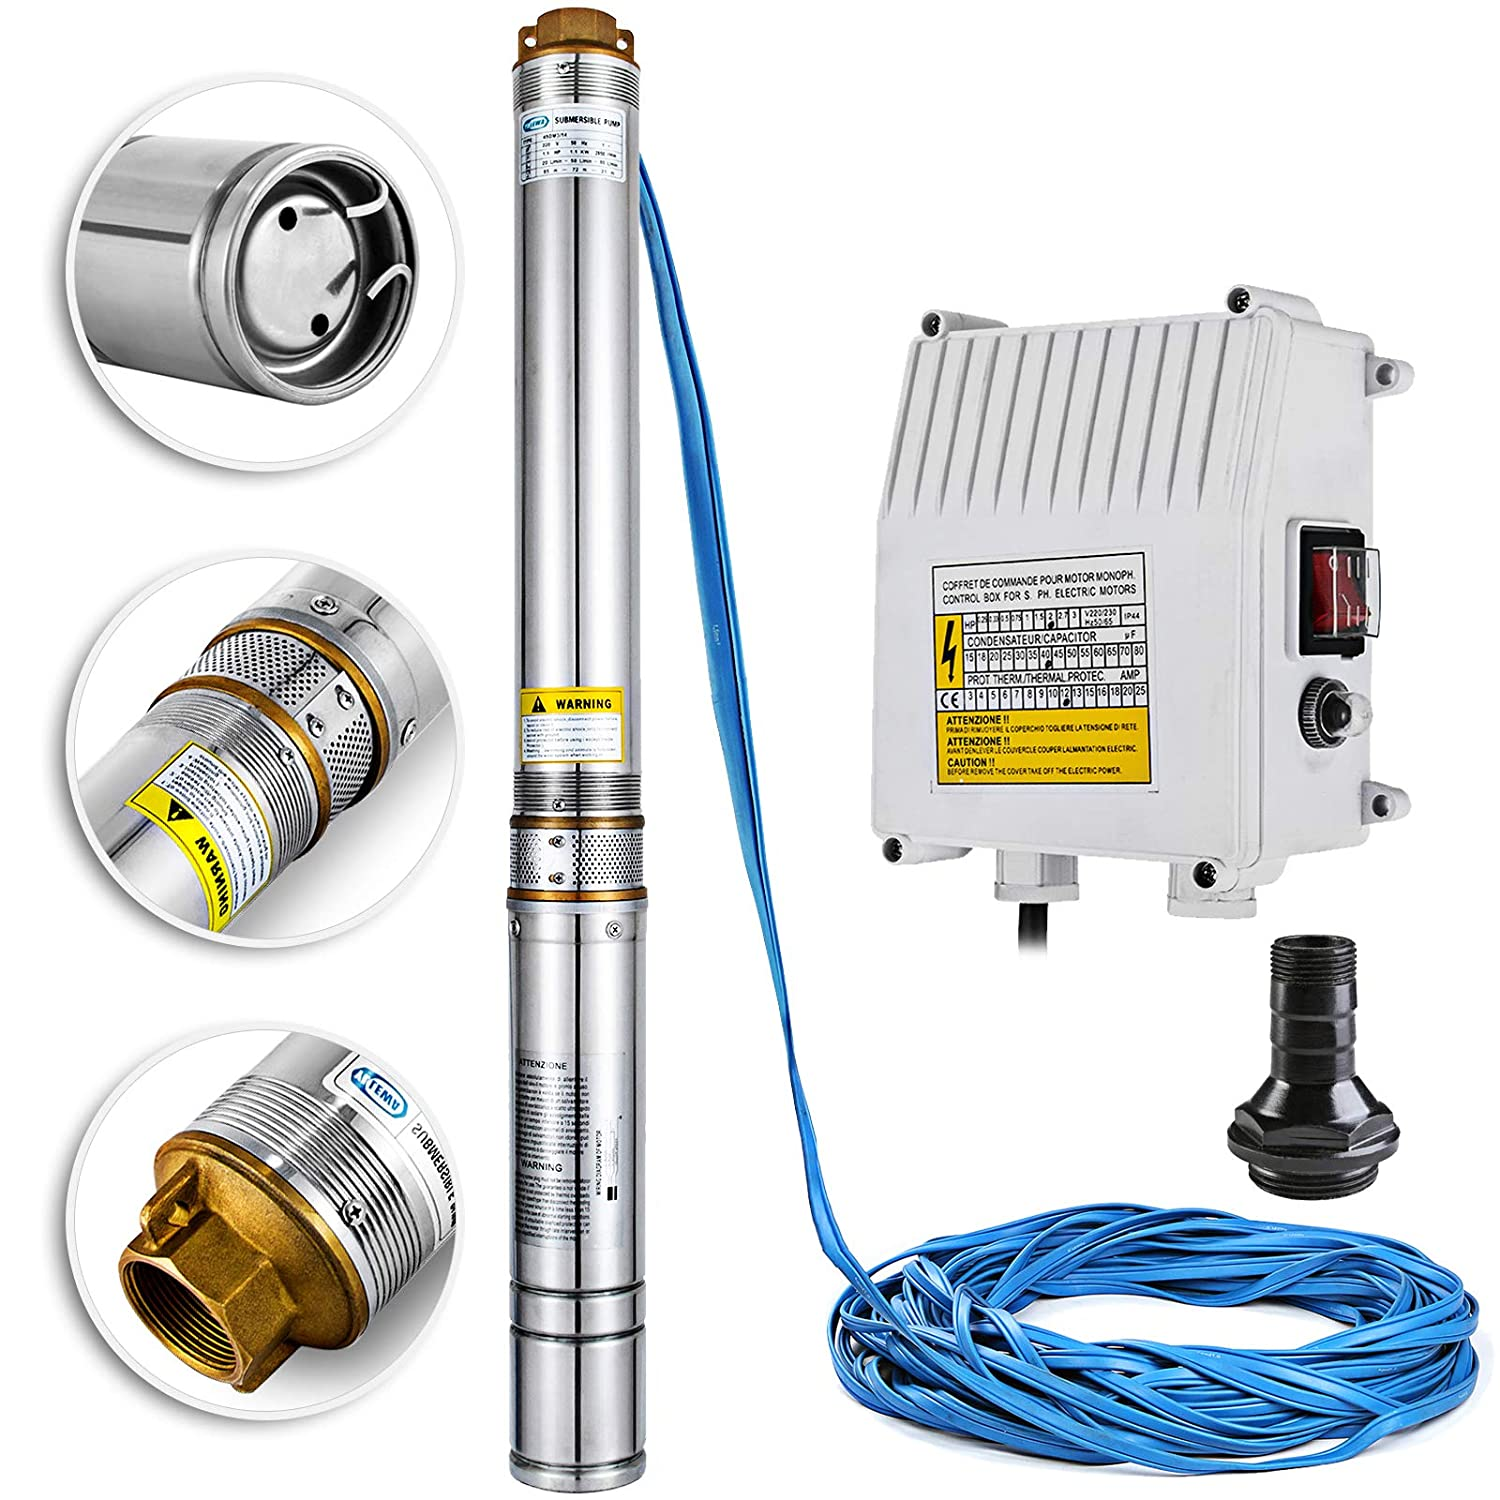 Happybuy Deep Well Submersible Pump 1.5HP Submersible Well Pump 330ft 24GPM Stainless Steel Deep Well Pump for Industrial and Home Use